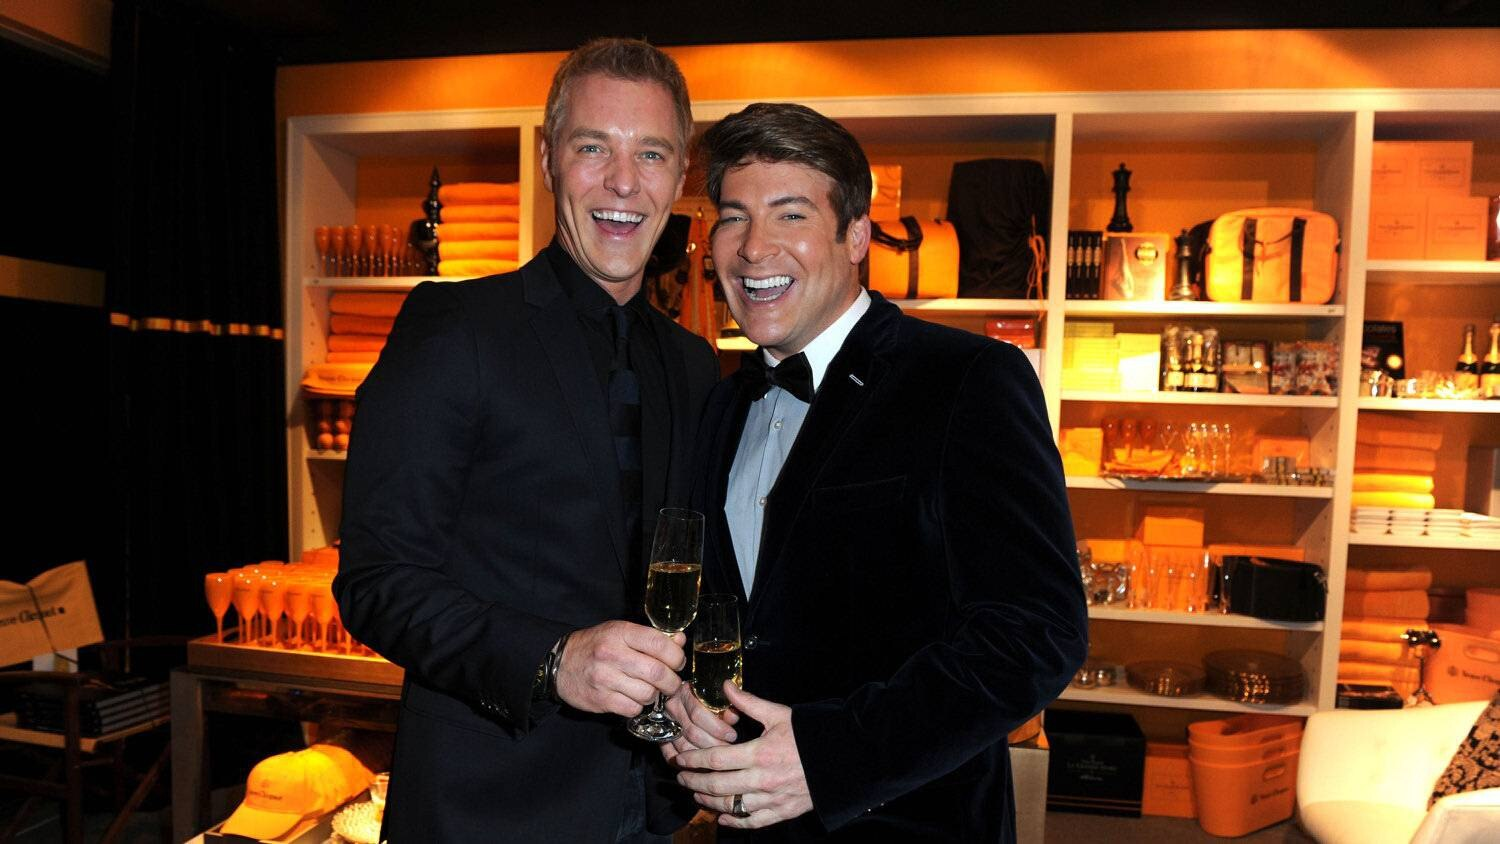 Chris hyndman hair piece - Experts Weigh In On Chris Hyndman S Alleged Sleepwalking Accident The Globe And Mail